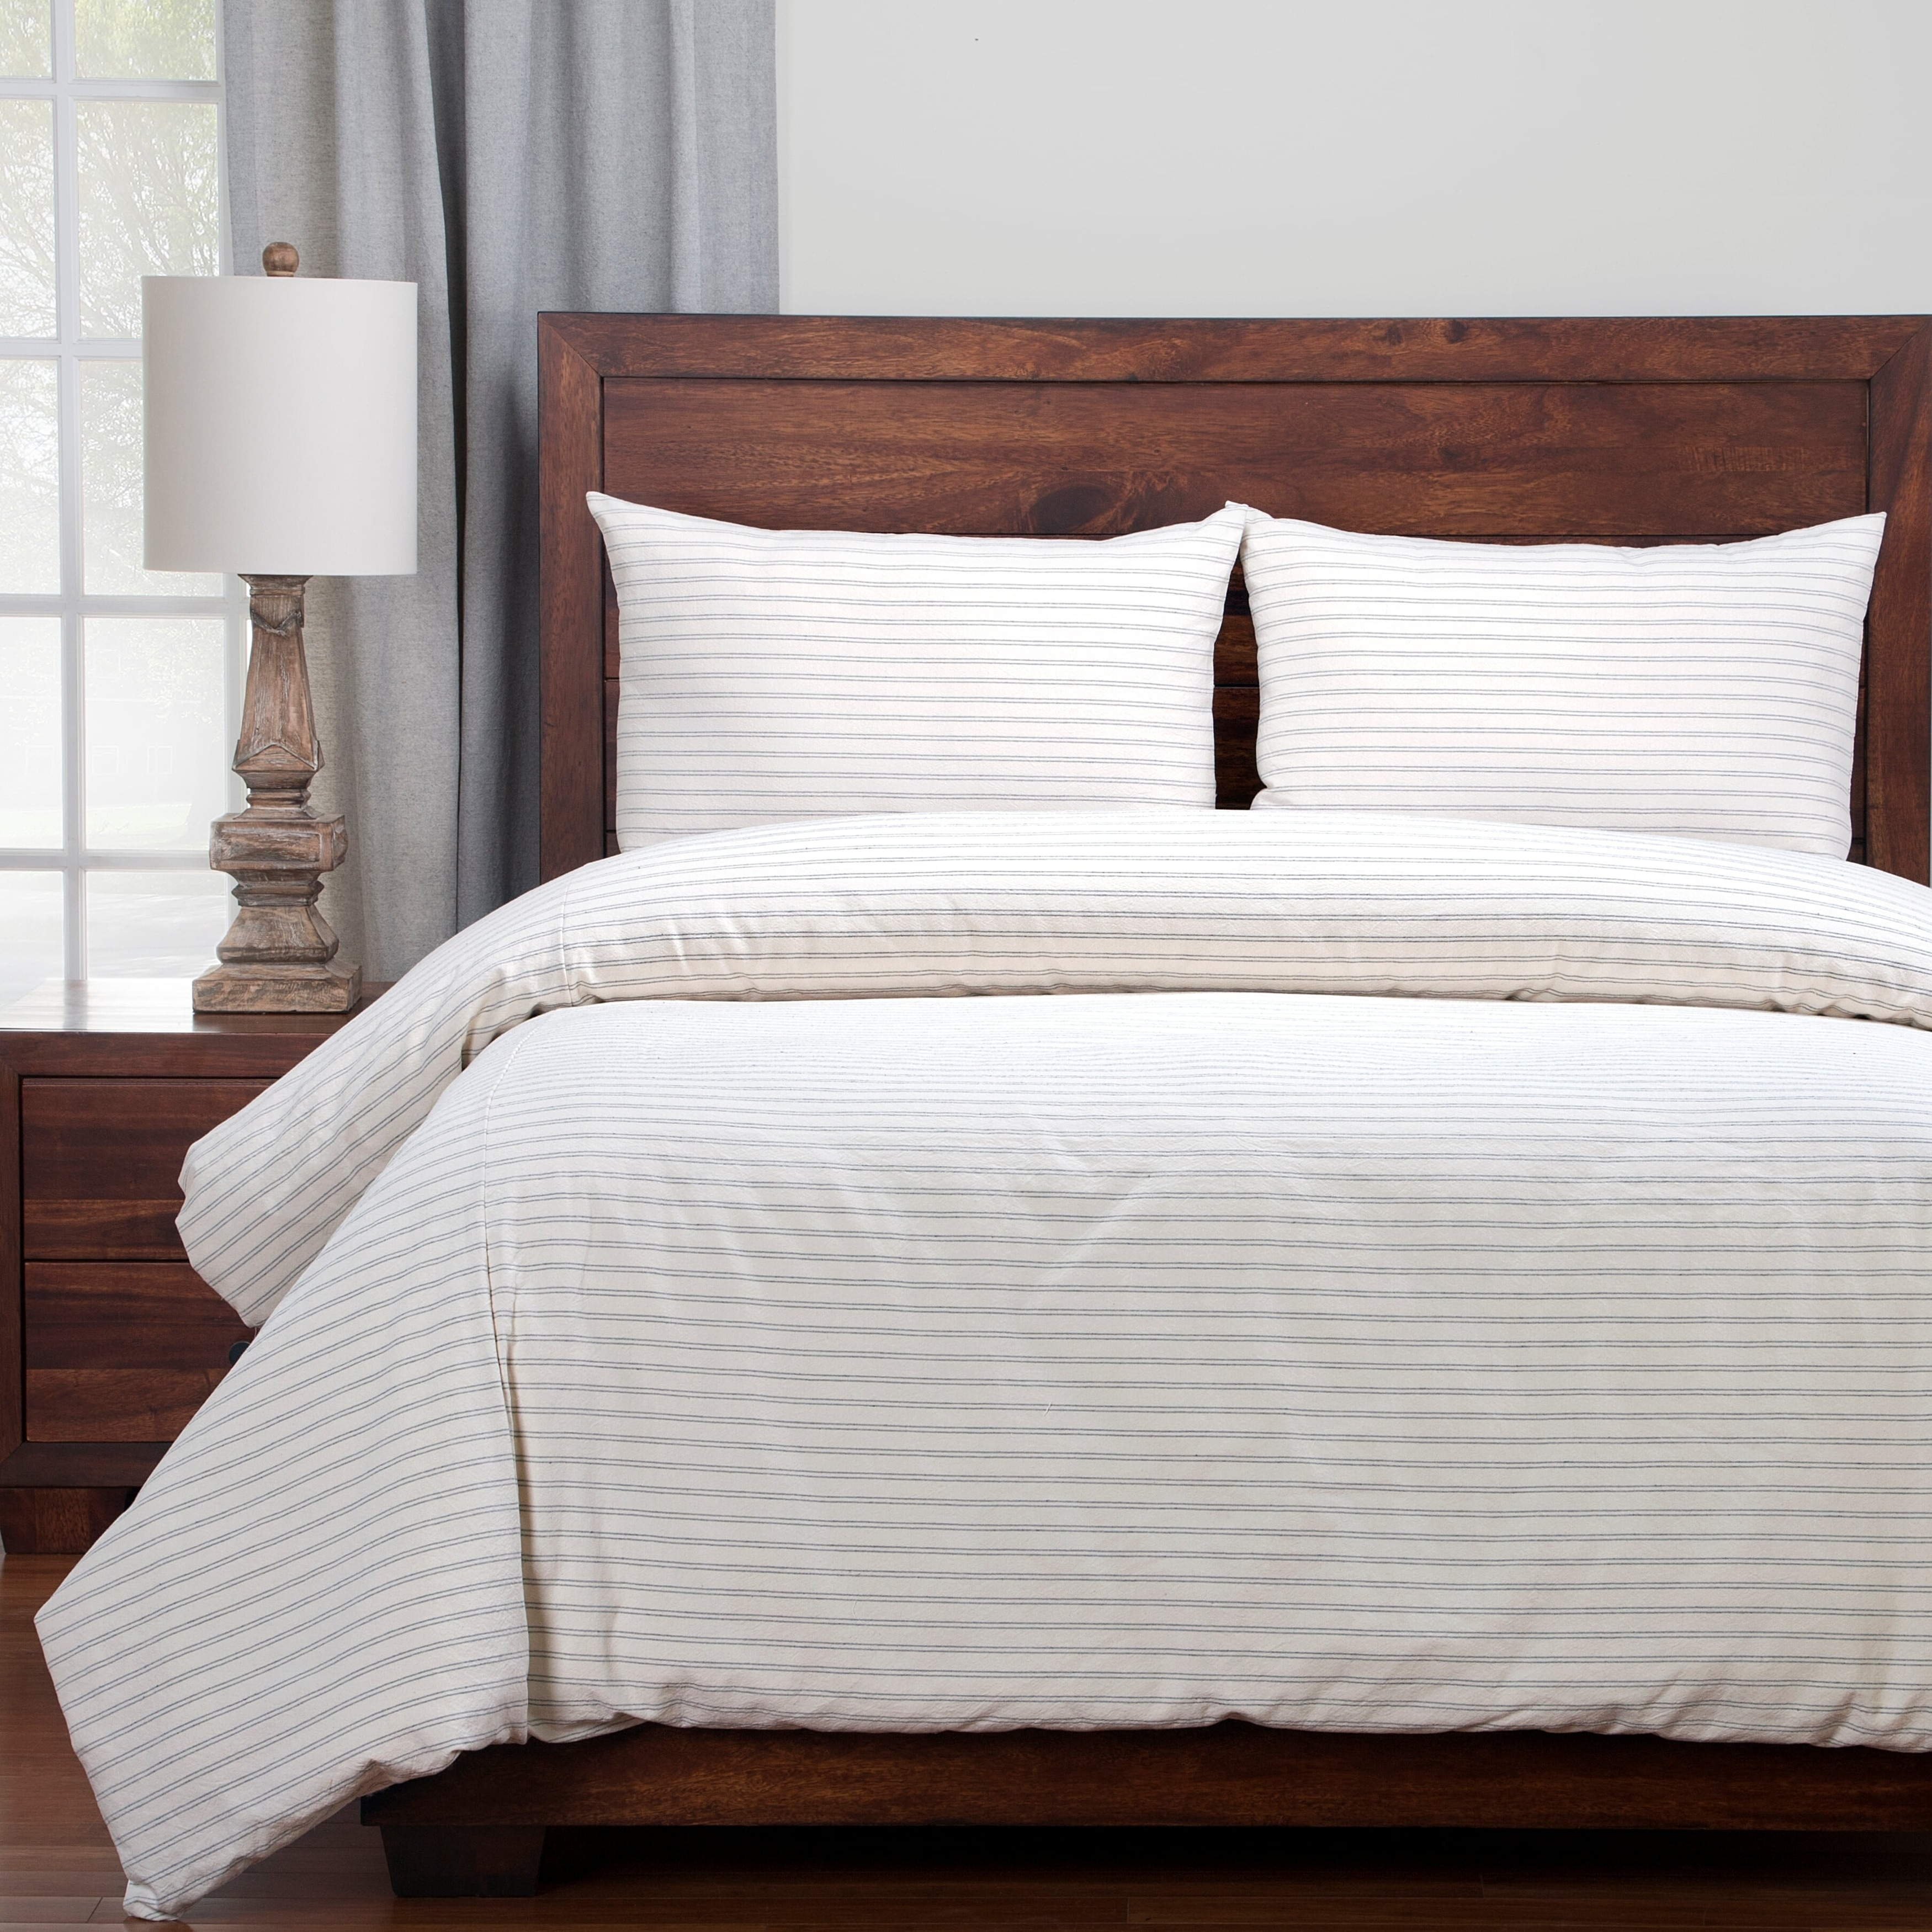 Full//Queen or King 3-Piece Ticking Stripe Quilt and Sham Bedding Set Grey White